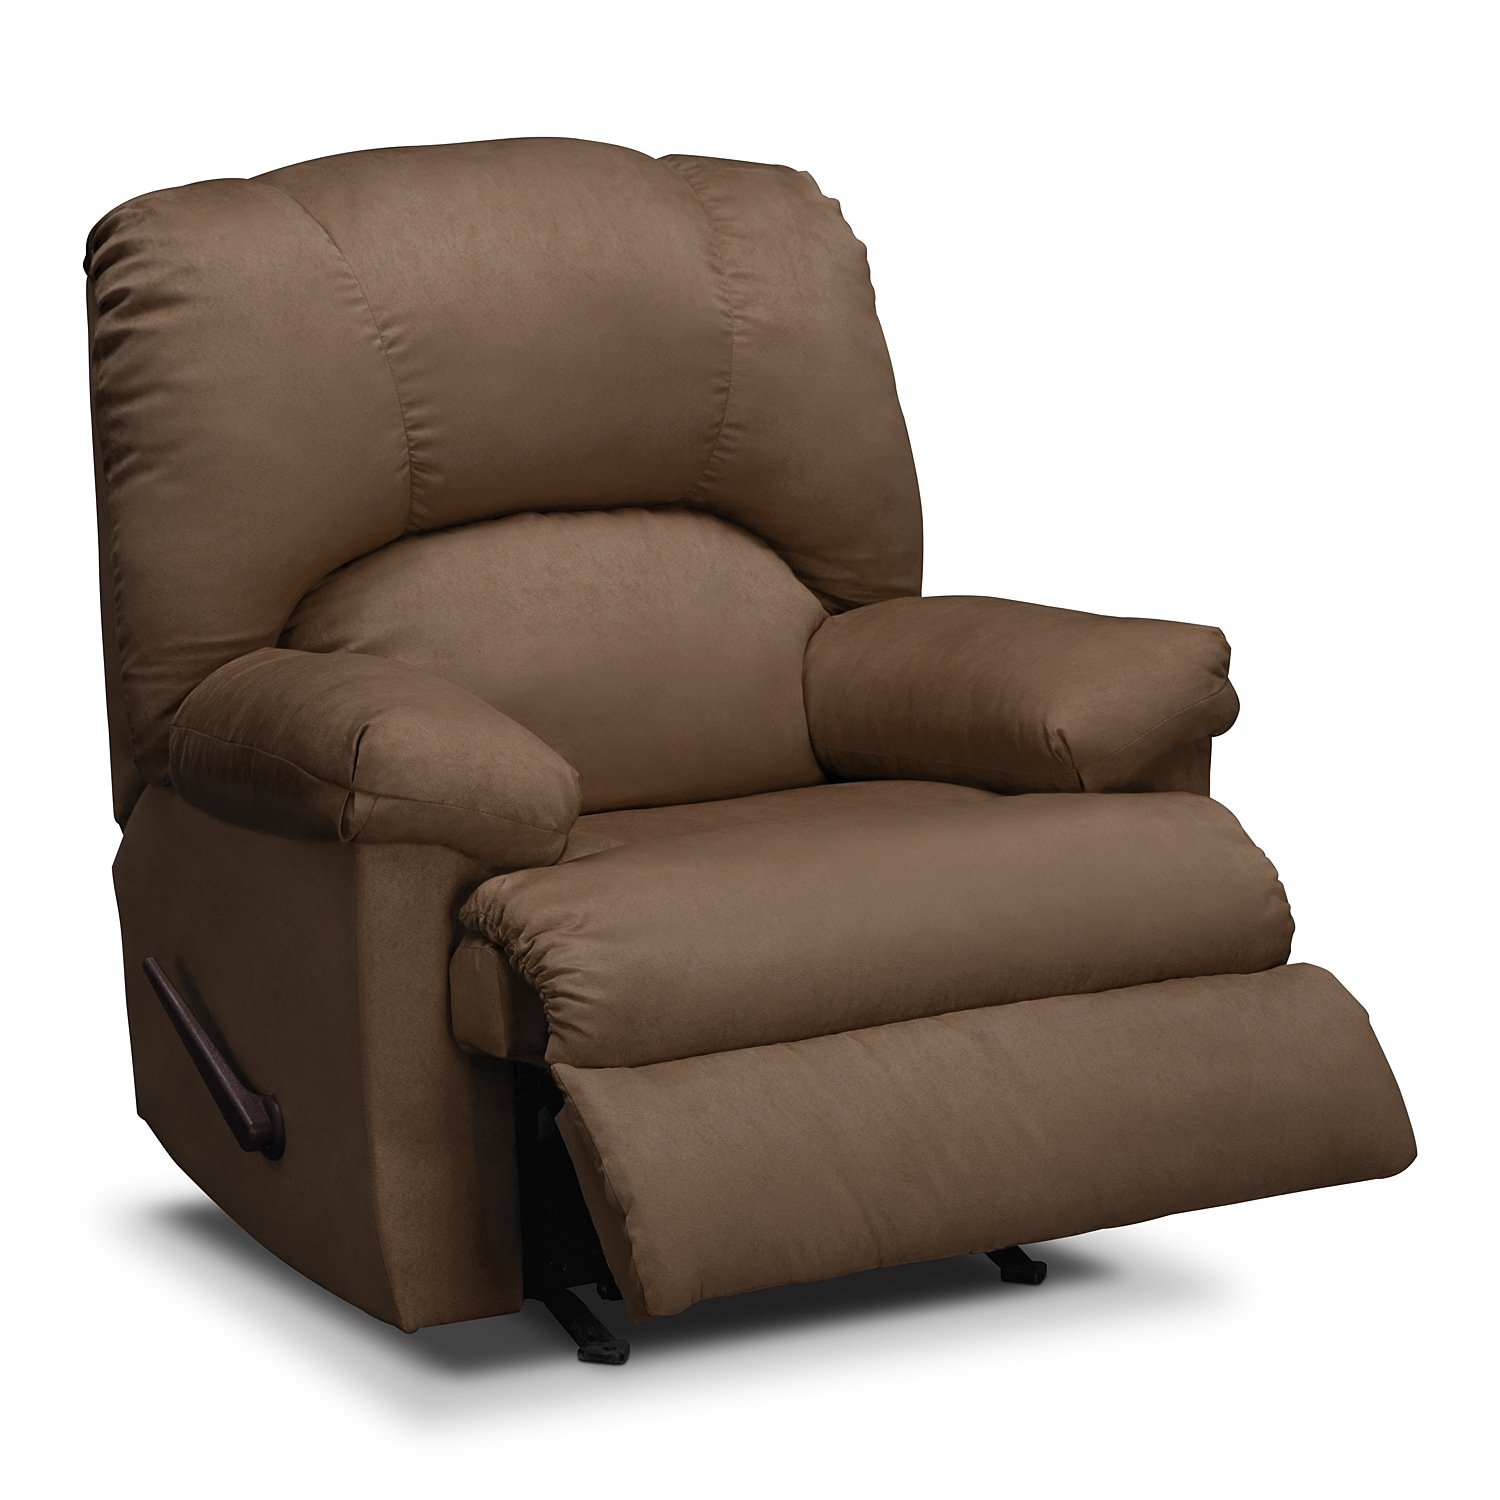 rocker all recliners small headrest living room marvel show chairs mode swivel recliner furniture power list leather